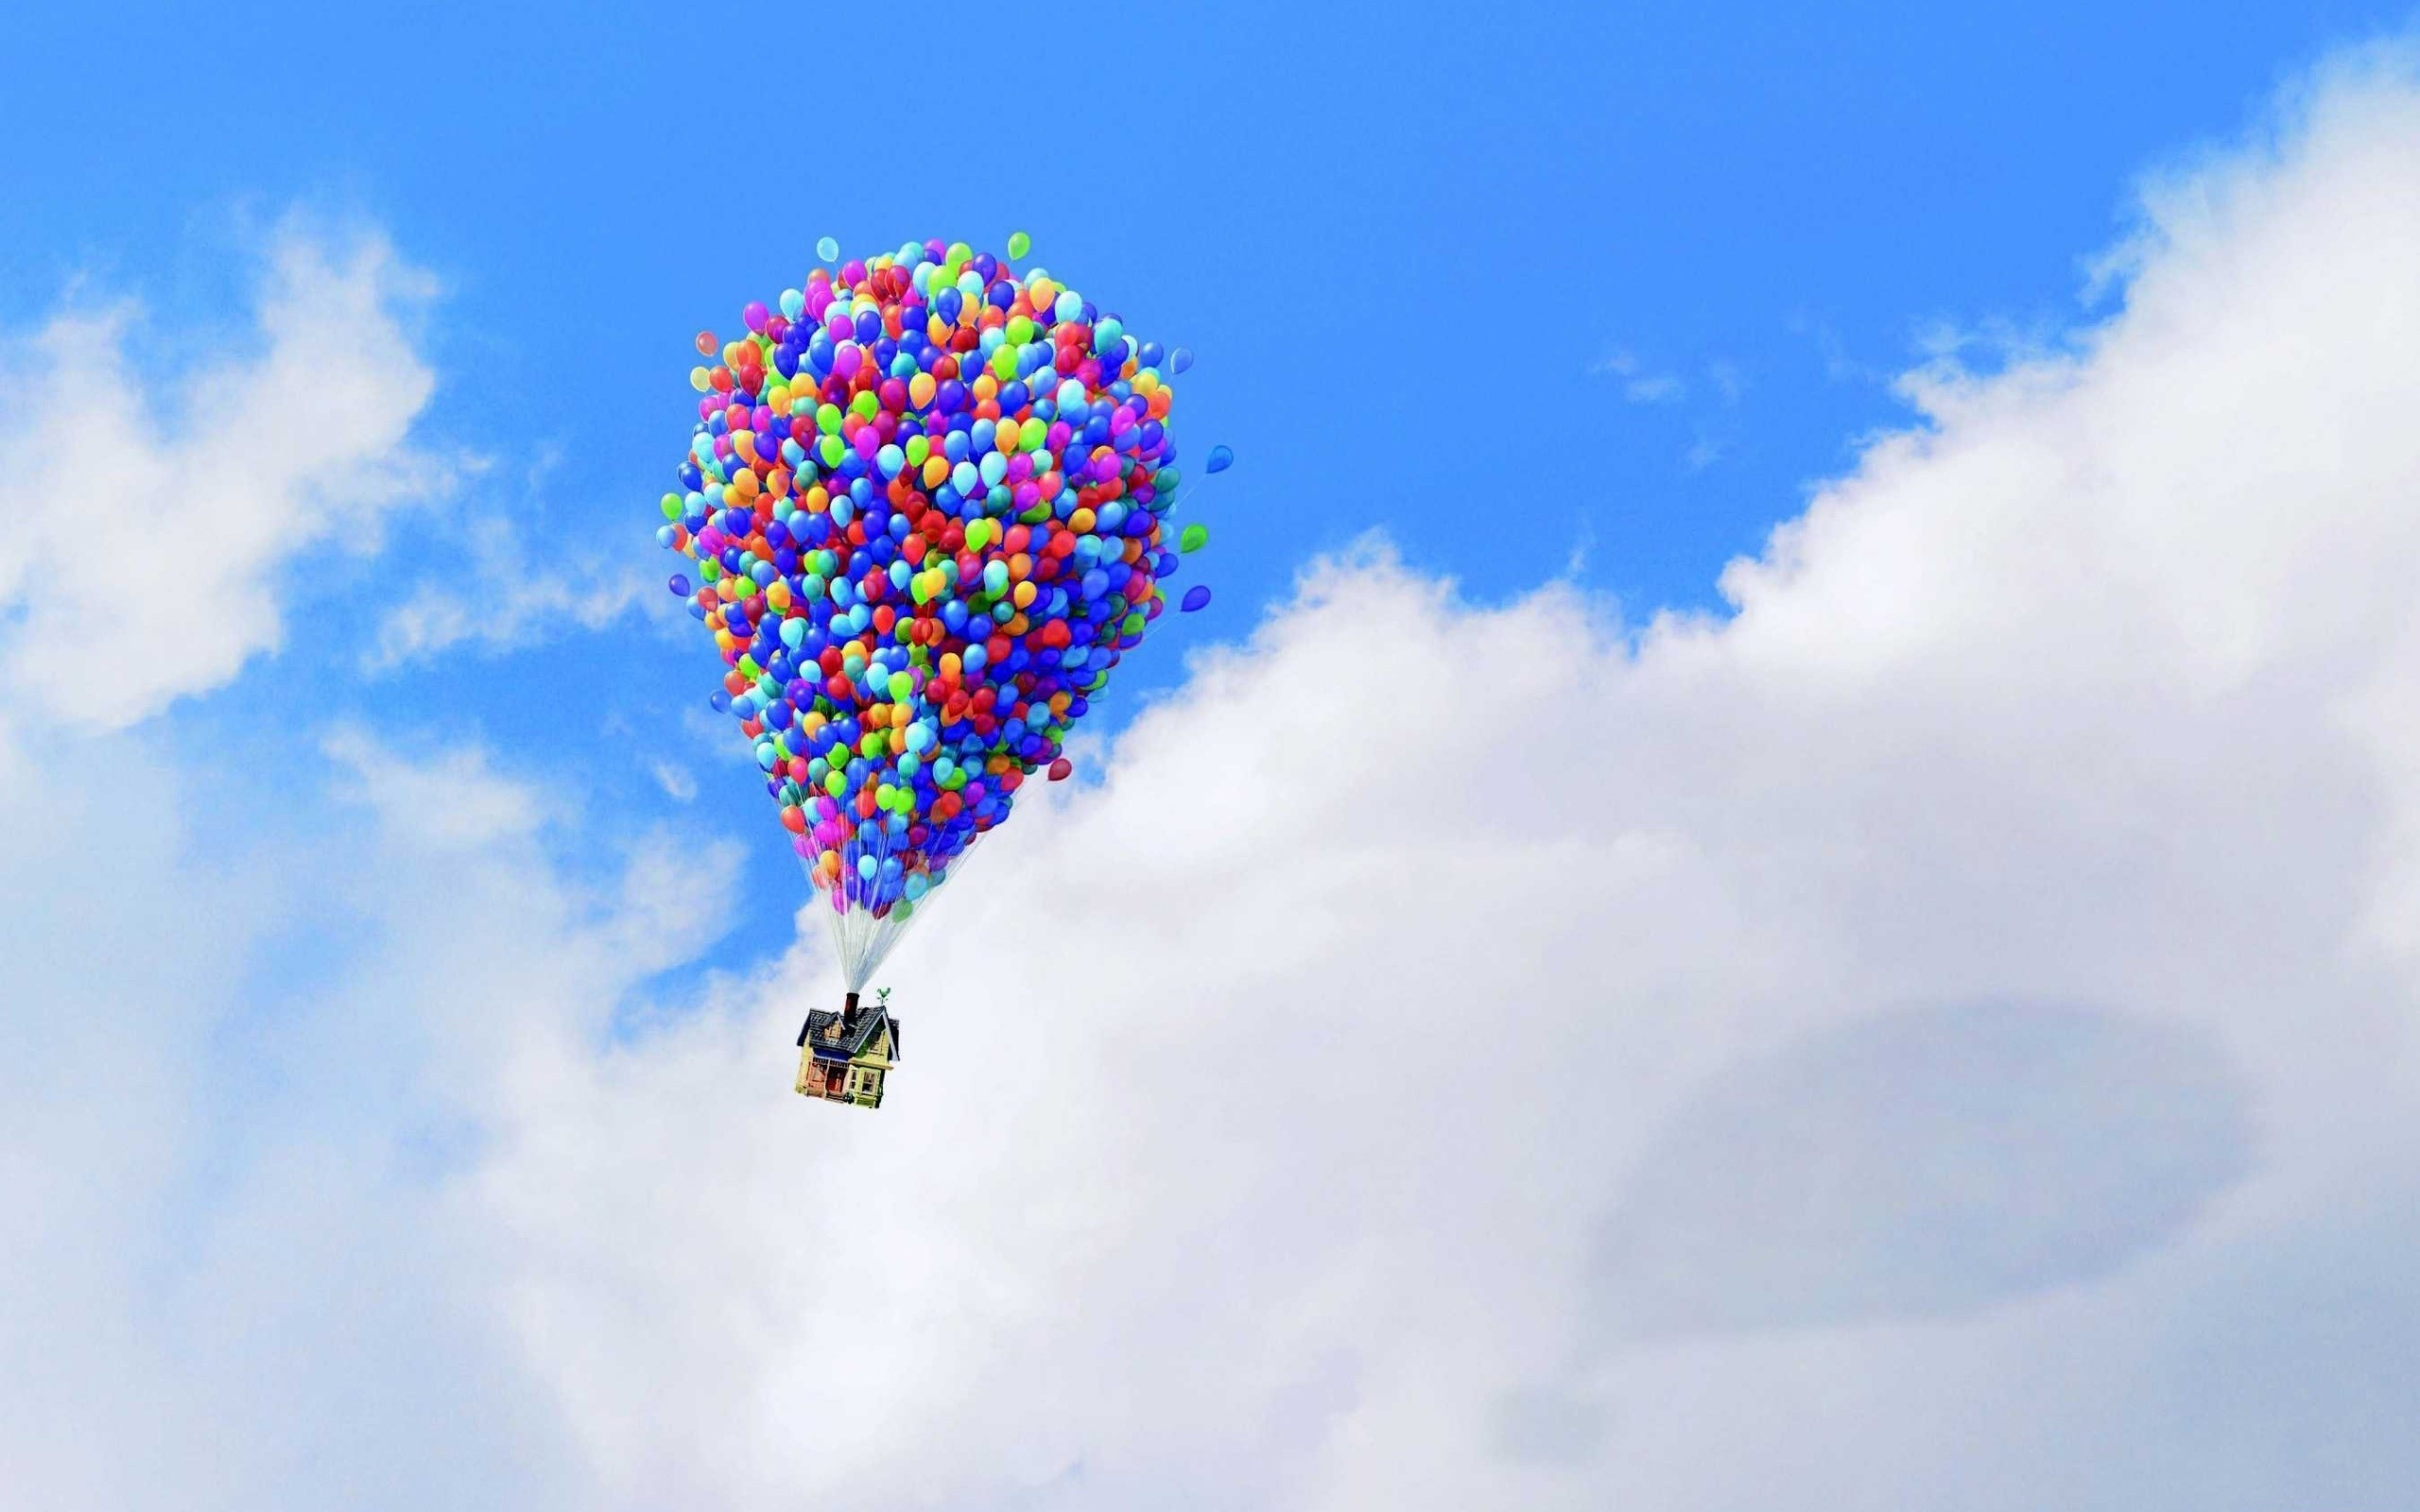 Up Wallpaper, Up, pixar, Pixar, animation, balloons, house, sky